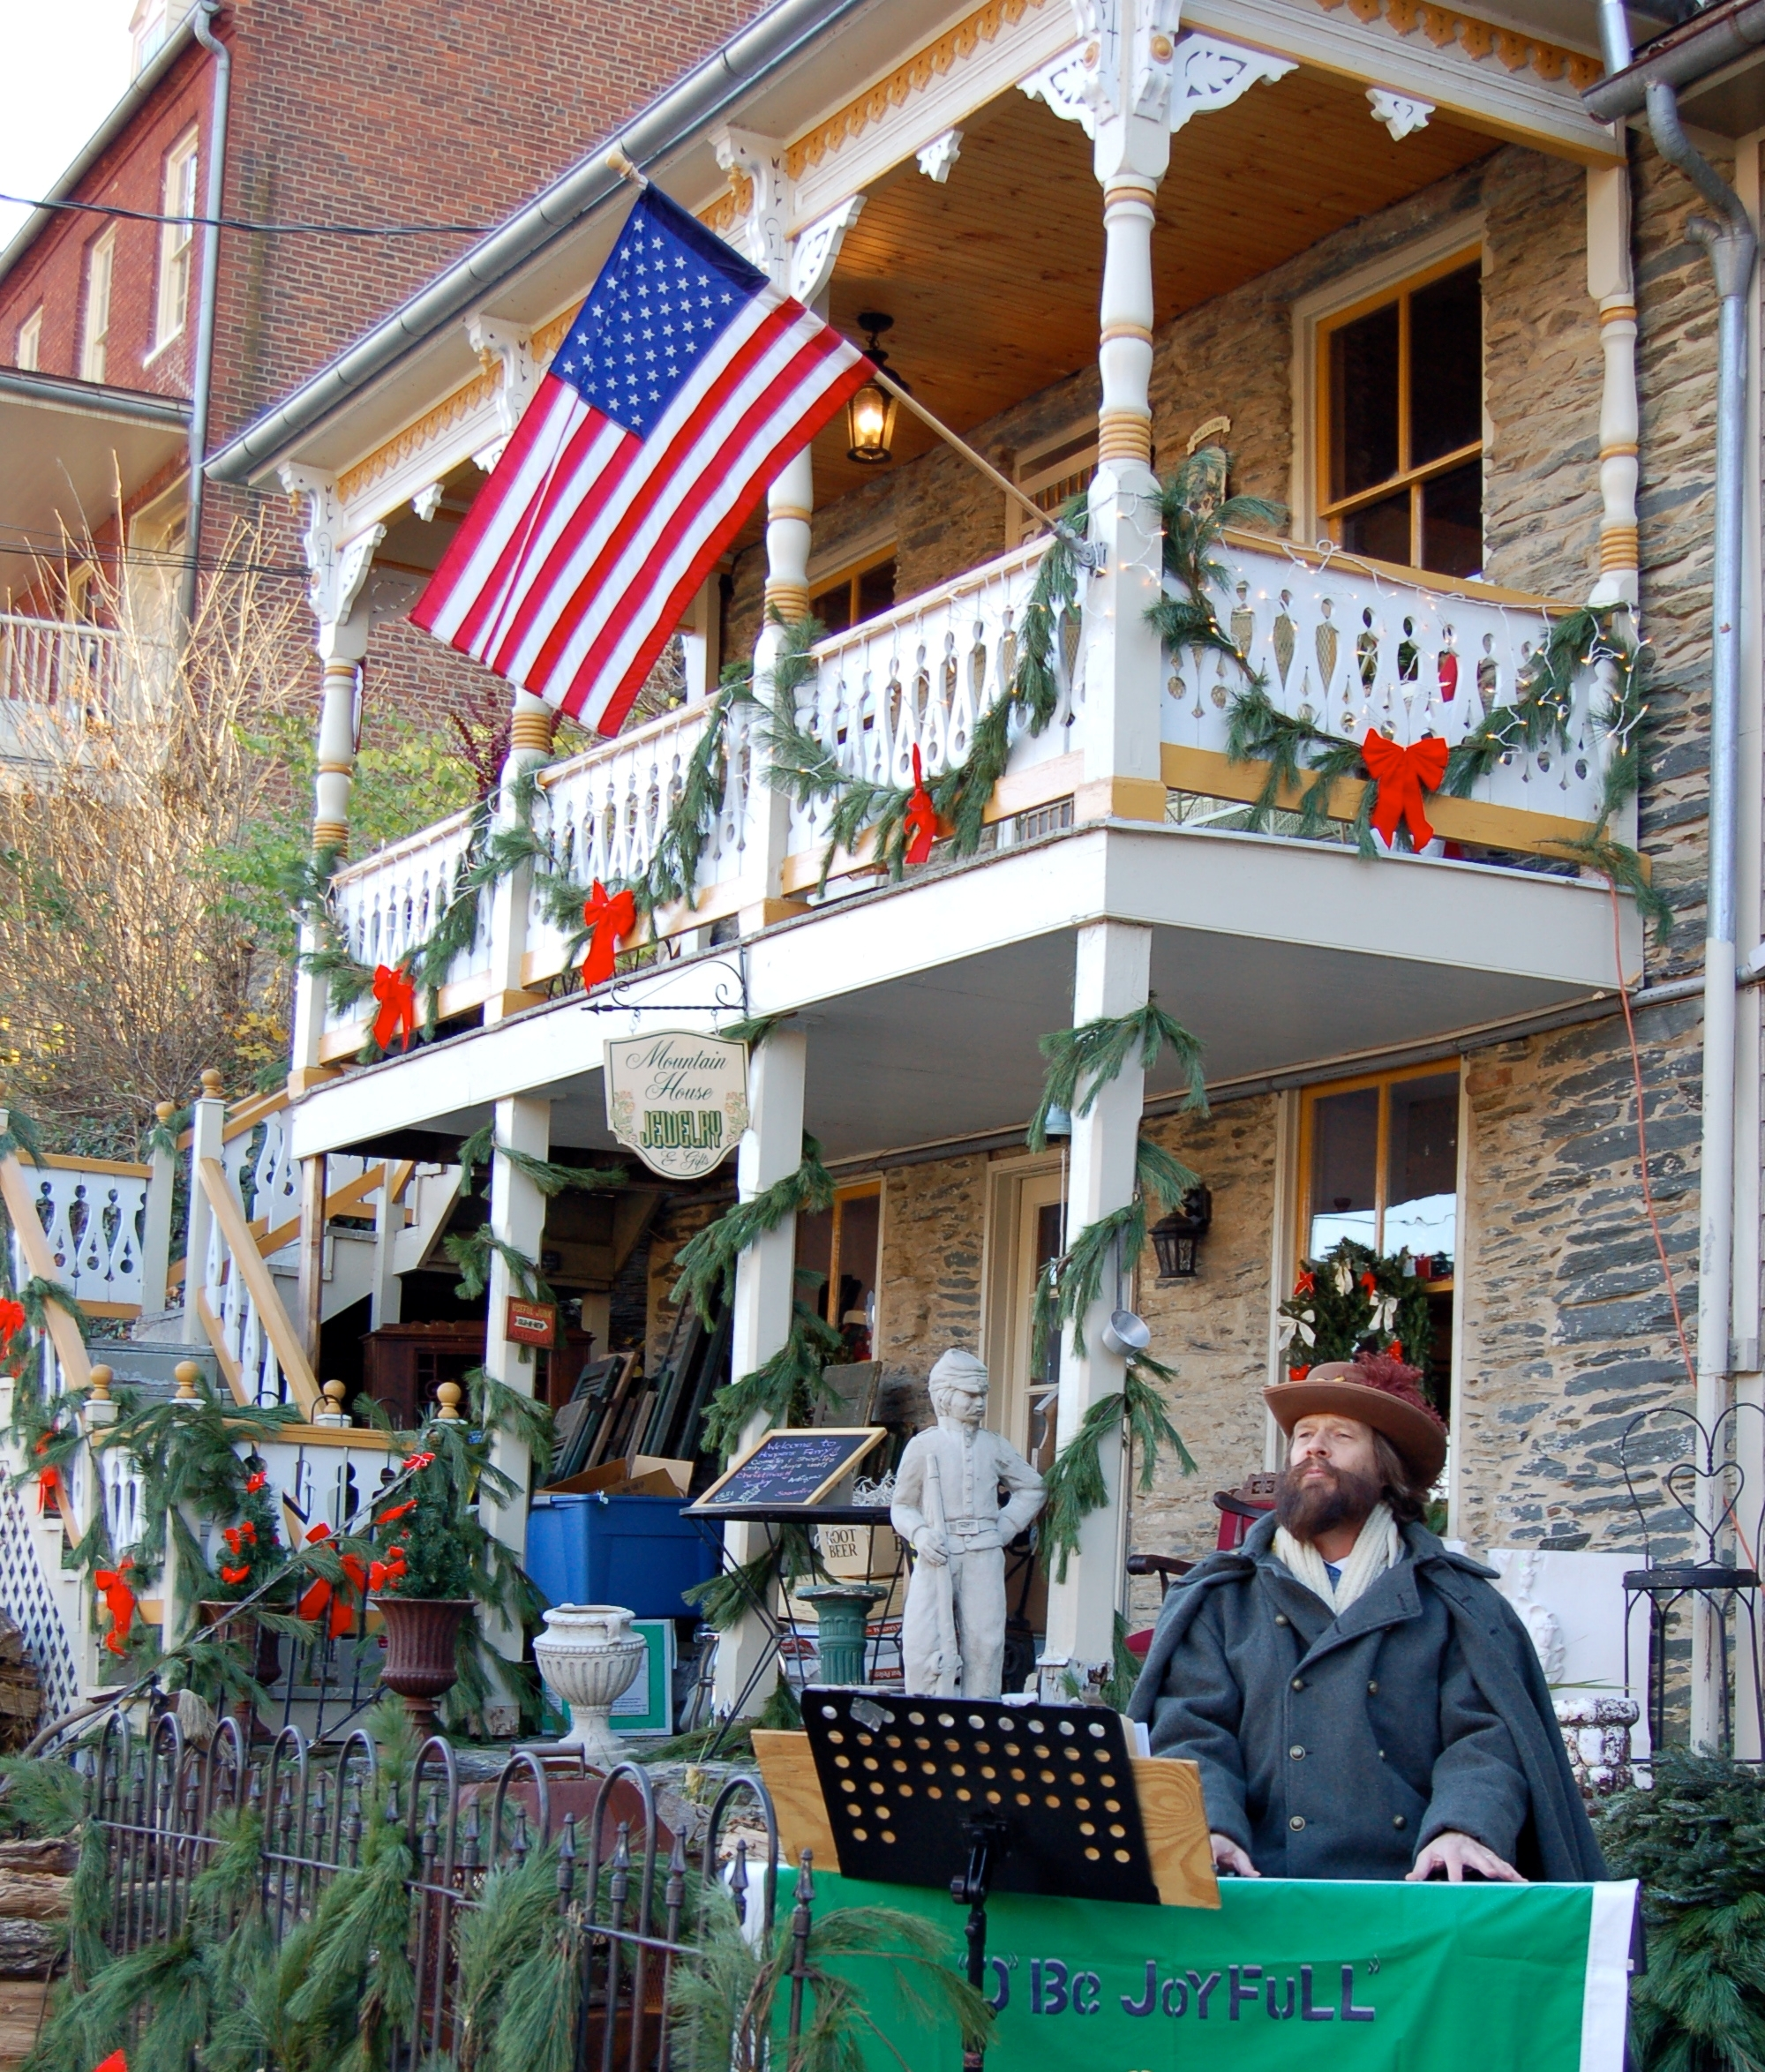 Celebrating the winter holidays in historic Harper's Ferry.